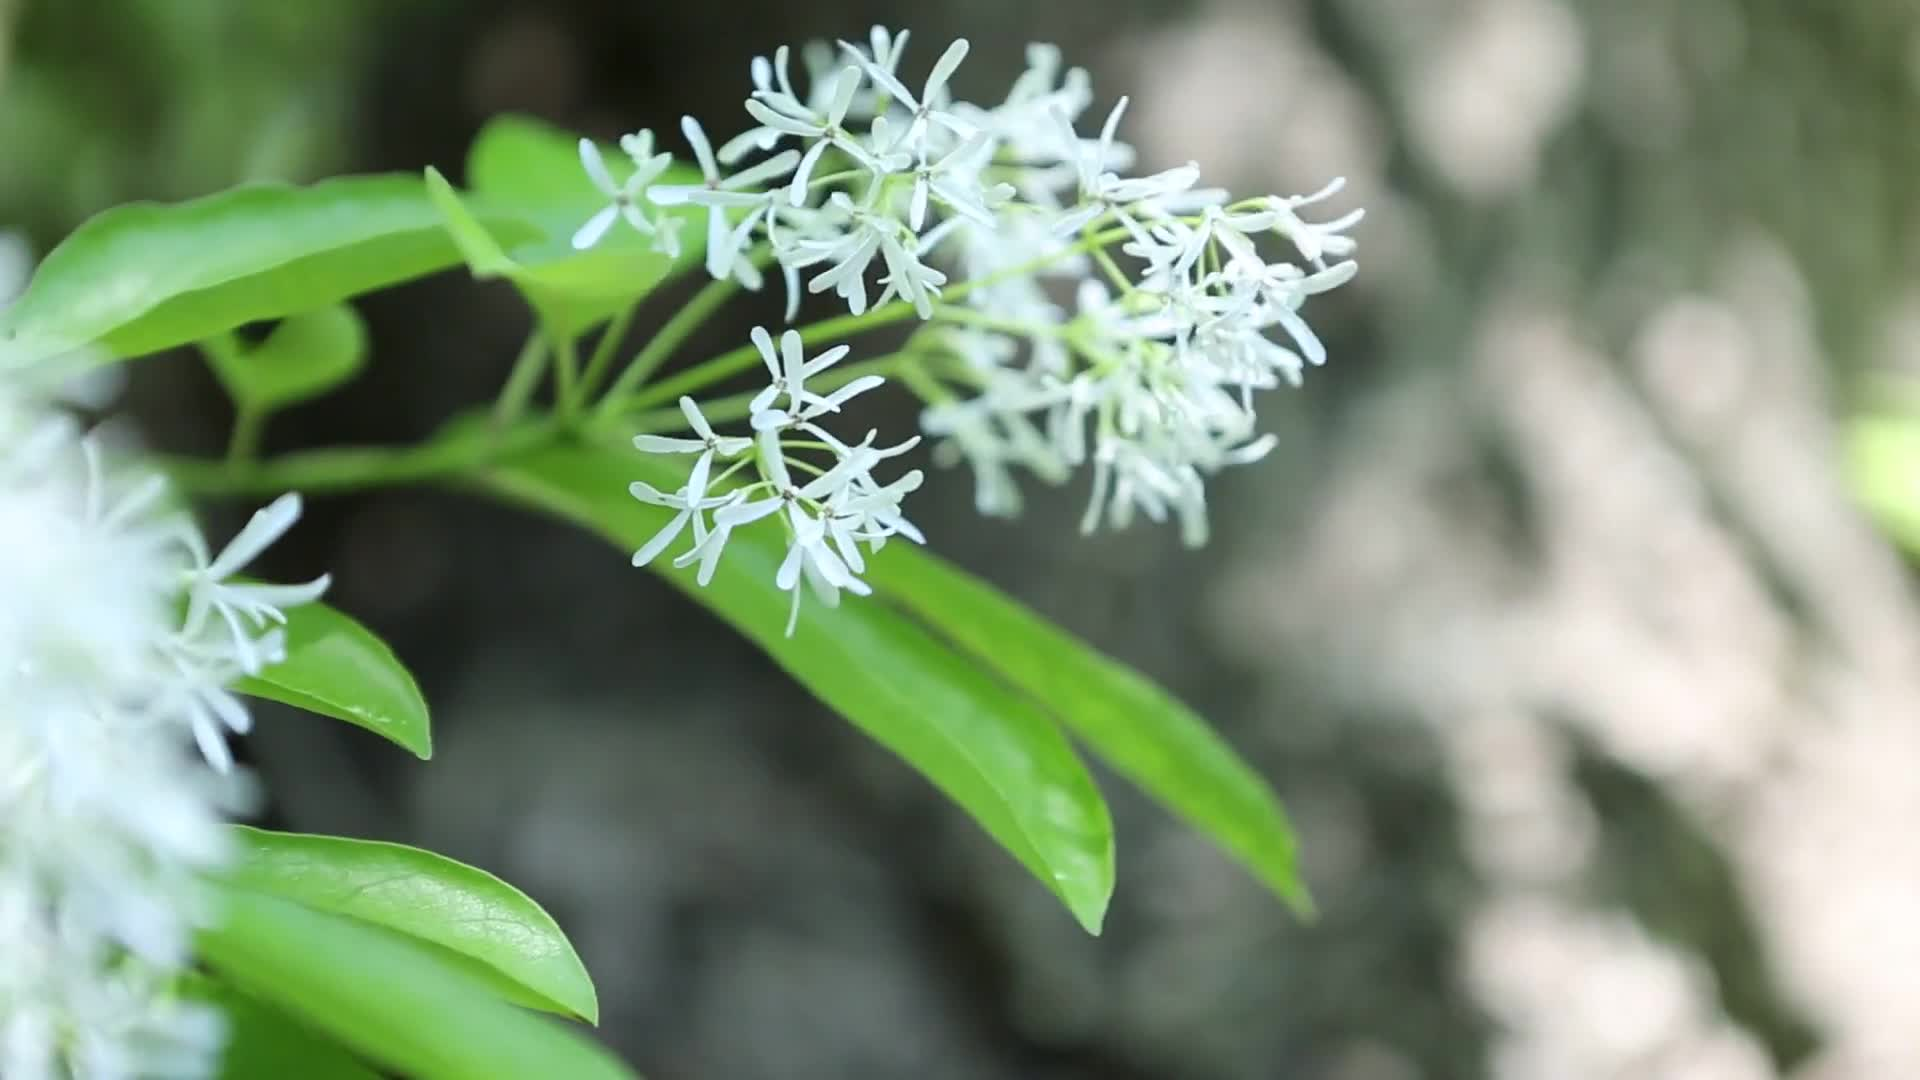 Close up video of white flower